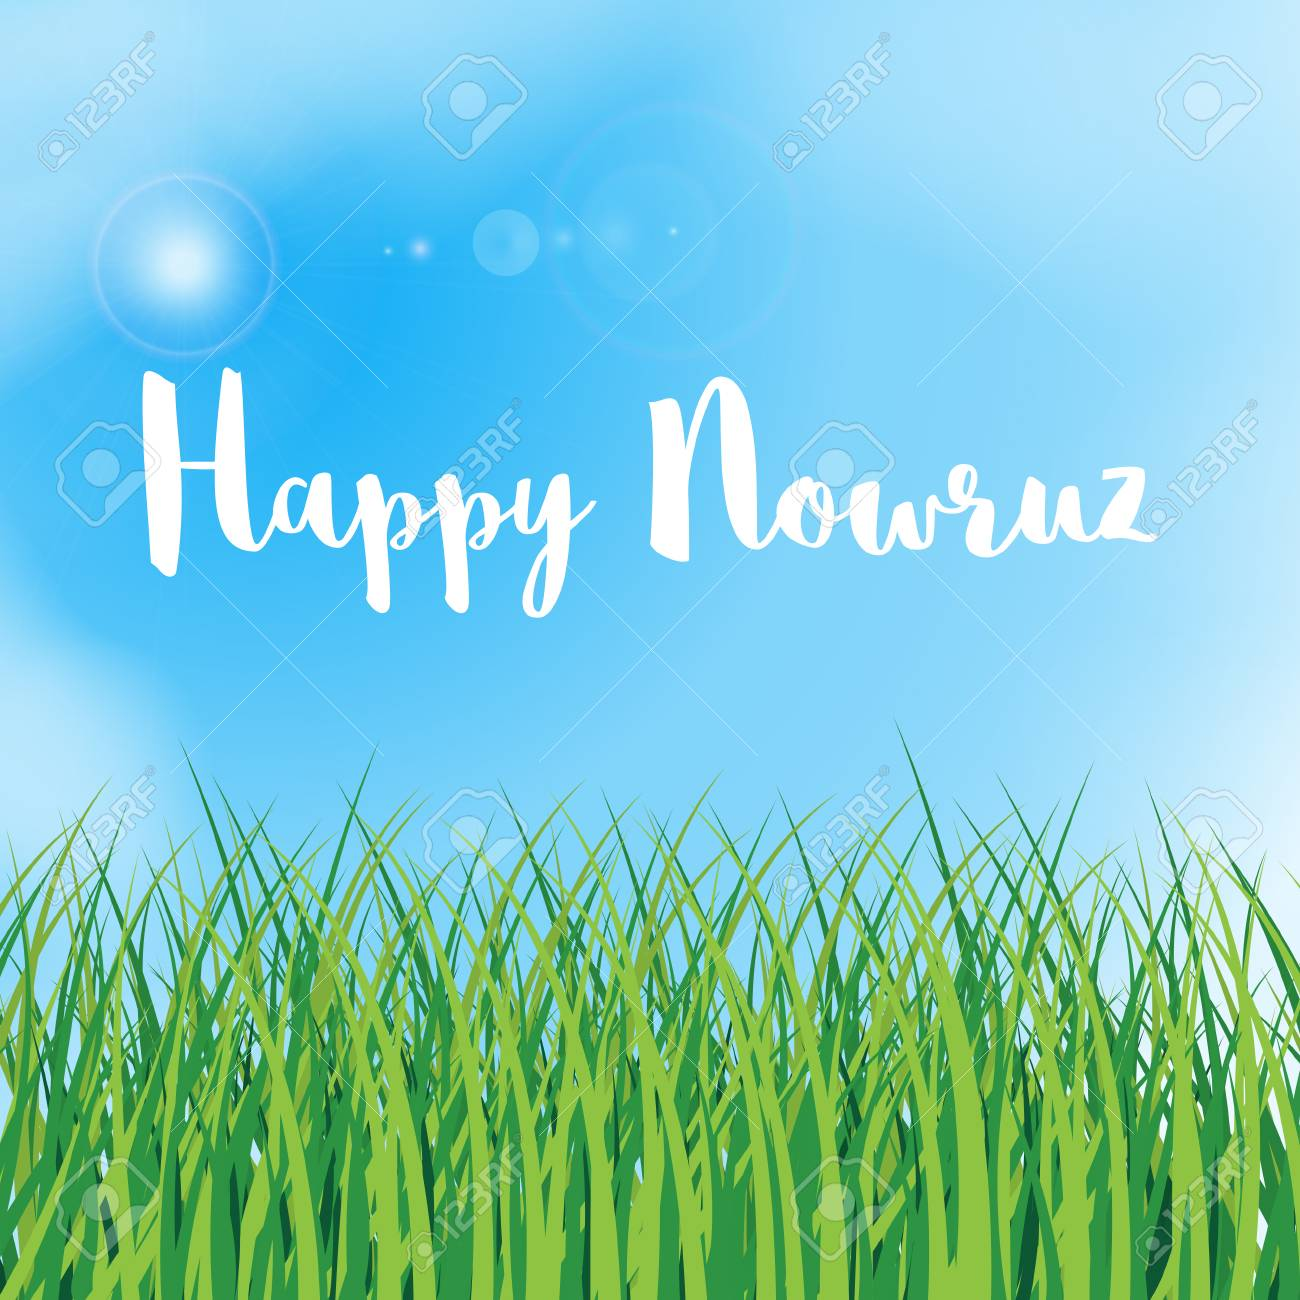 Happy nowruz greeting card iranian persian new year march happy nowruz greeting card iranian persian new year march equinox green grass kristyandbryce Gallery